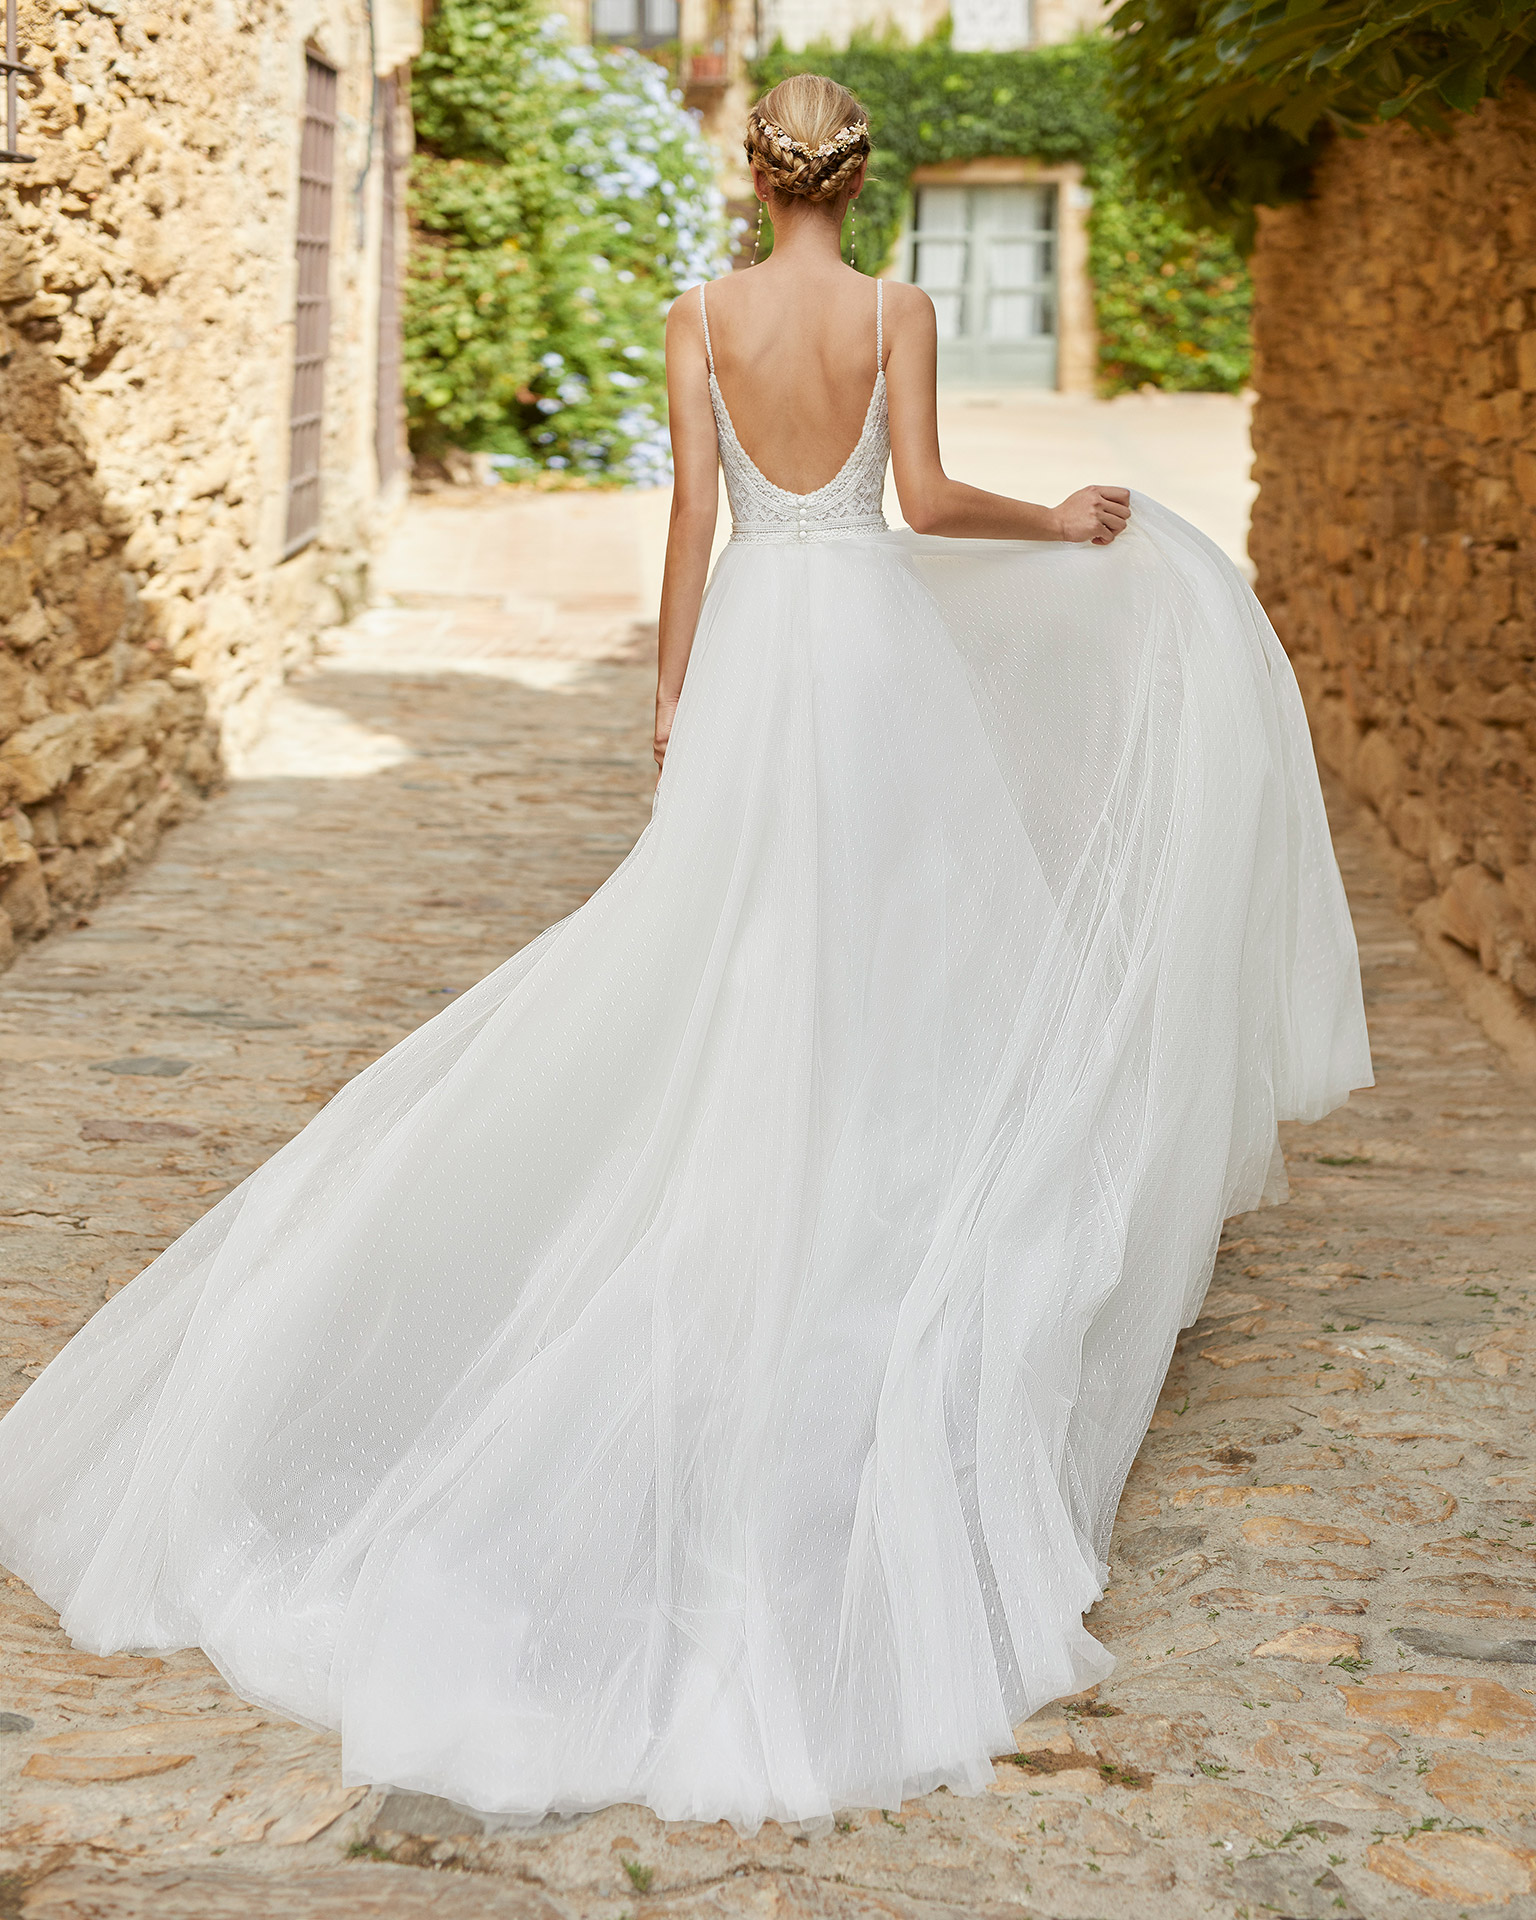 Romantic princess wedding dress with a beadwork and lace bodice. With V-neckline and round back with beaded shoulder straps. A dreamlike Alma Novia model in dot tulle. 2022 ALMANOVIA Collection.